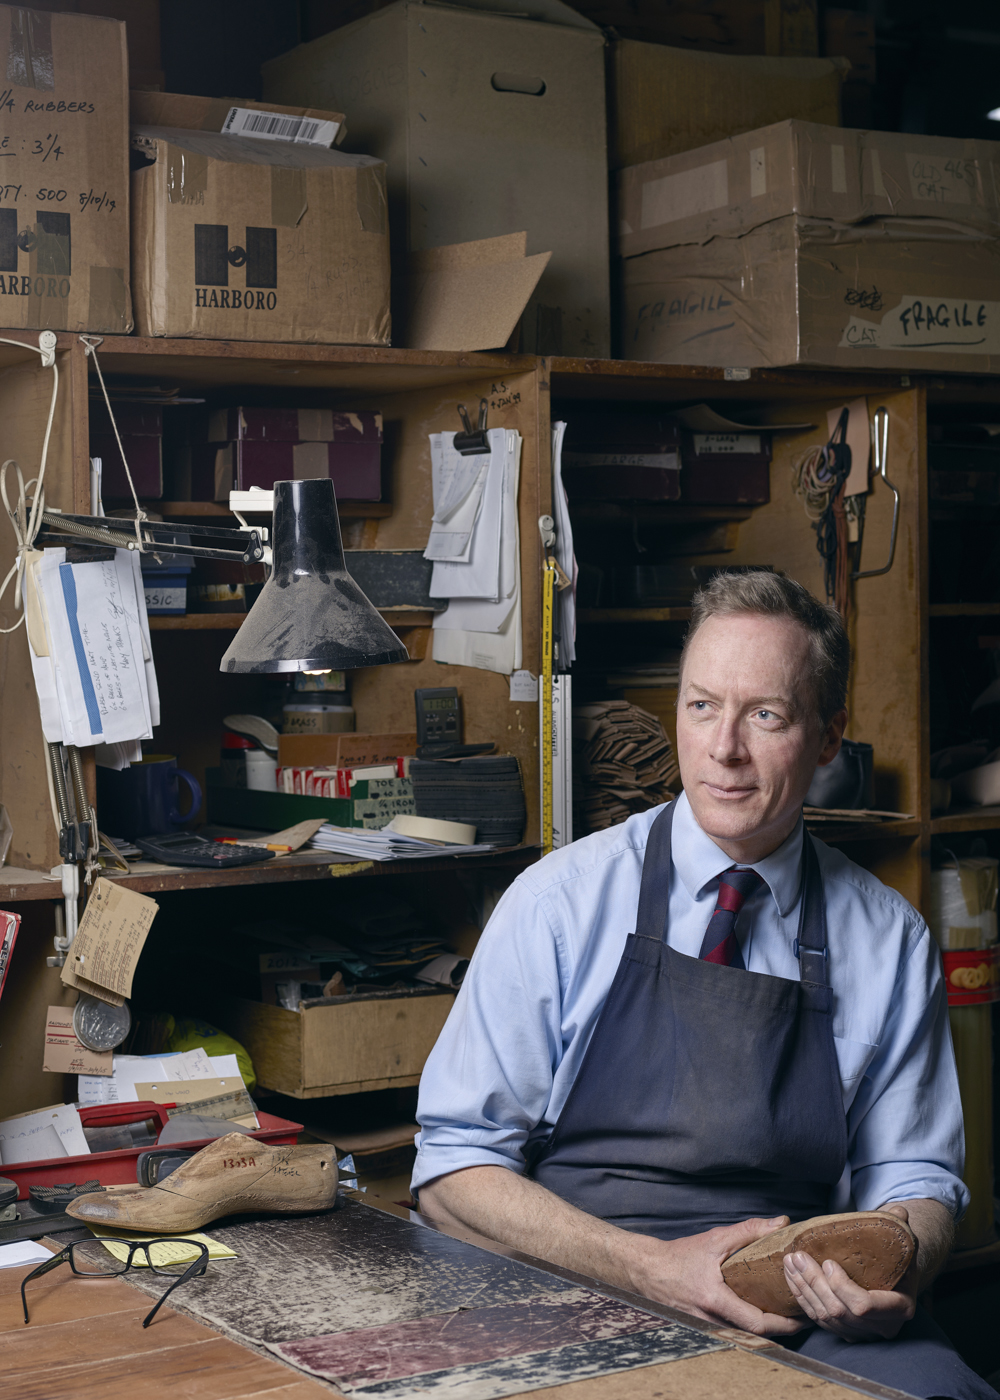 John Lobb Jr. Photographed for part of my 'Crafted' series. Click here to view the full story here: